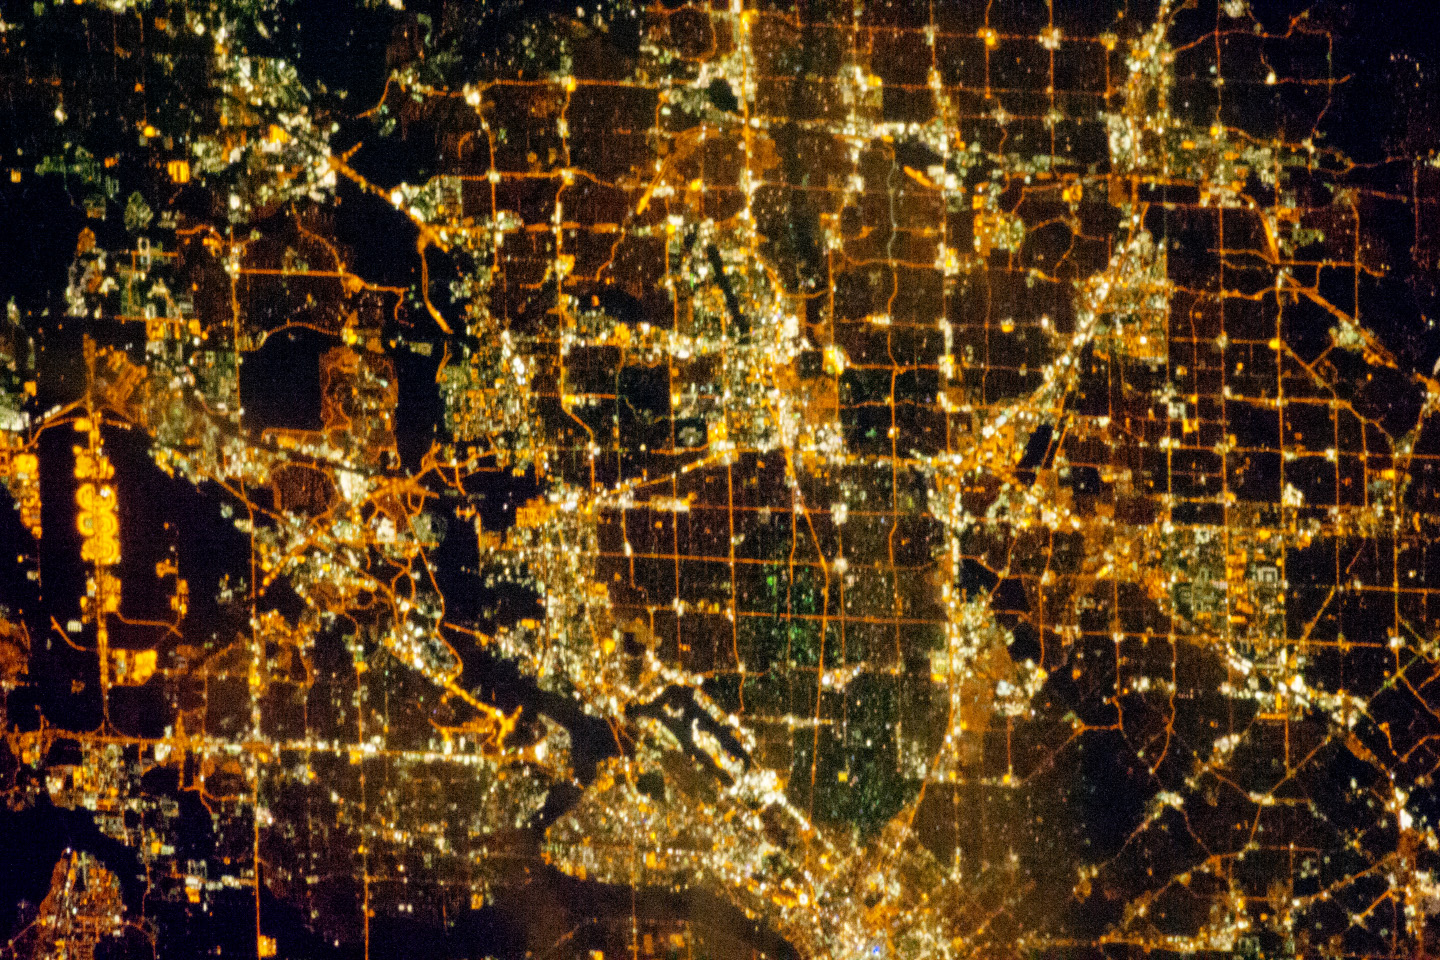 Today's Image of the Day comes from the NASA Earth Observatory and features a look at the city of Dallas, Texas at night.